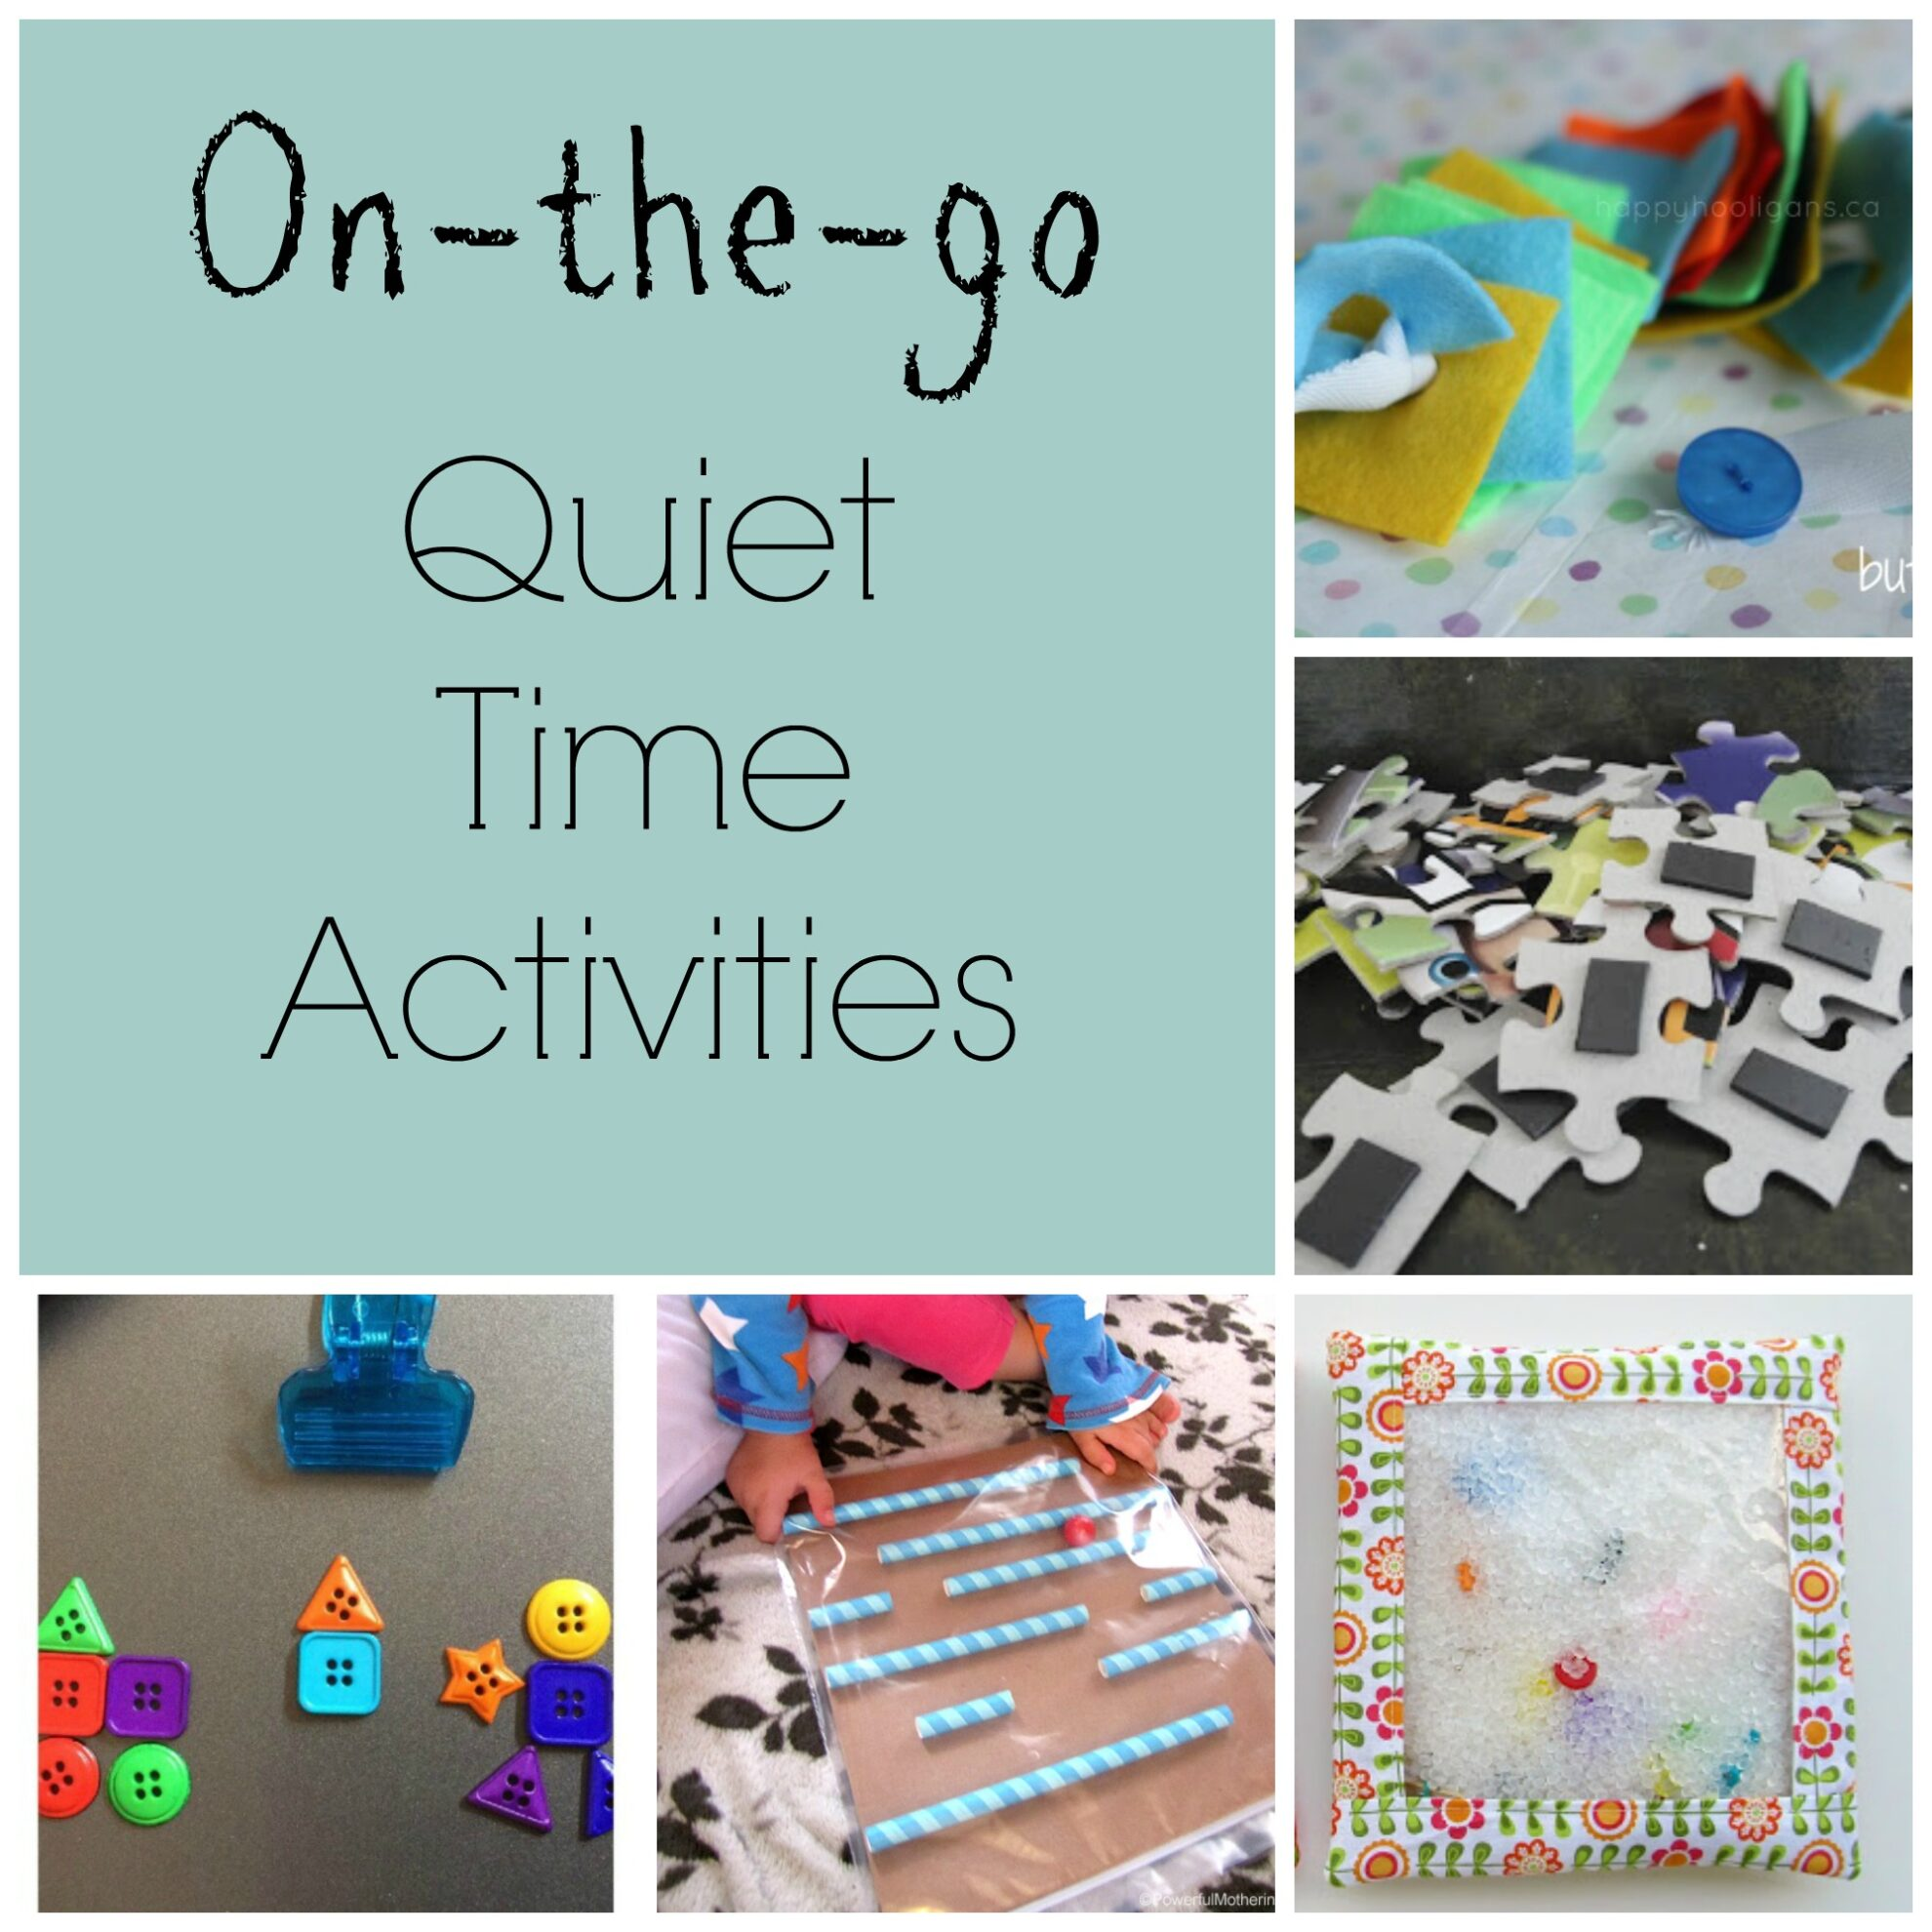 On-the-go Quiet Time Activities - How Wee Learn